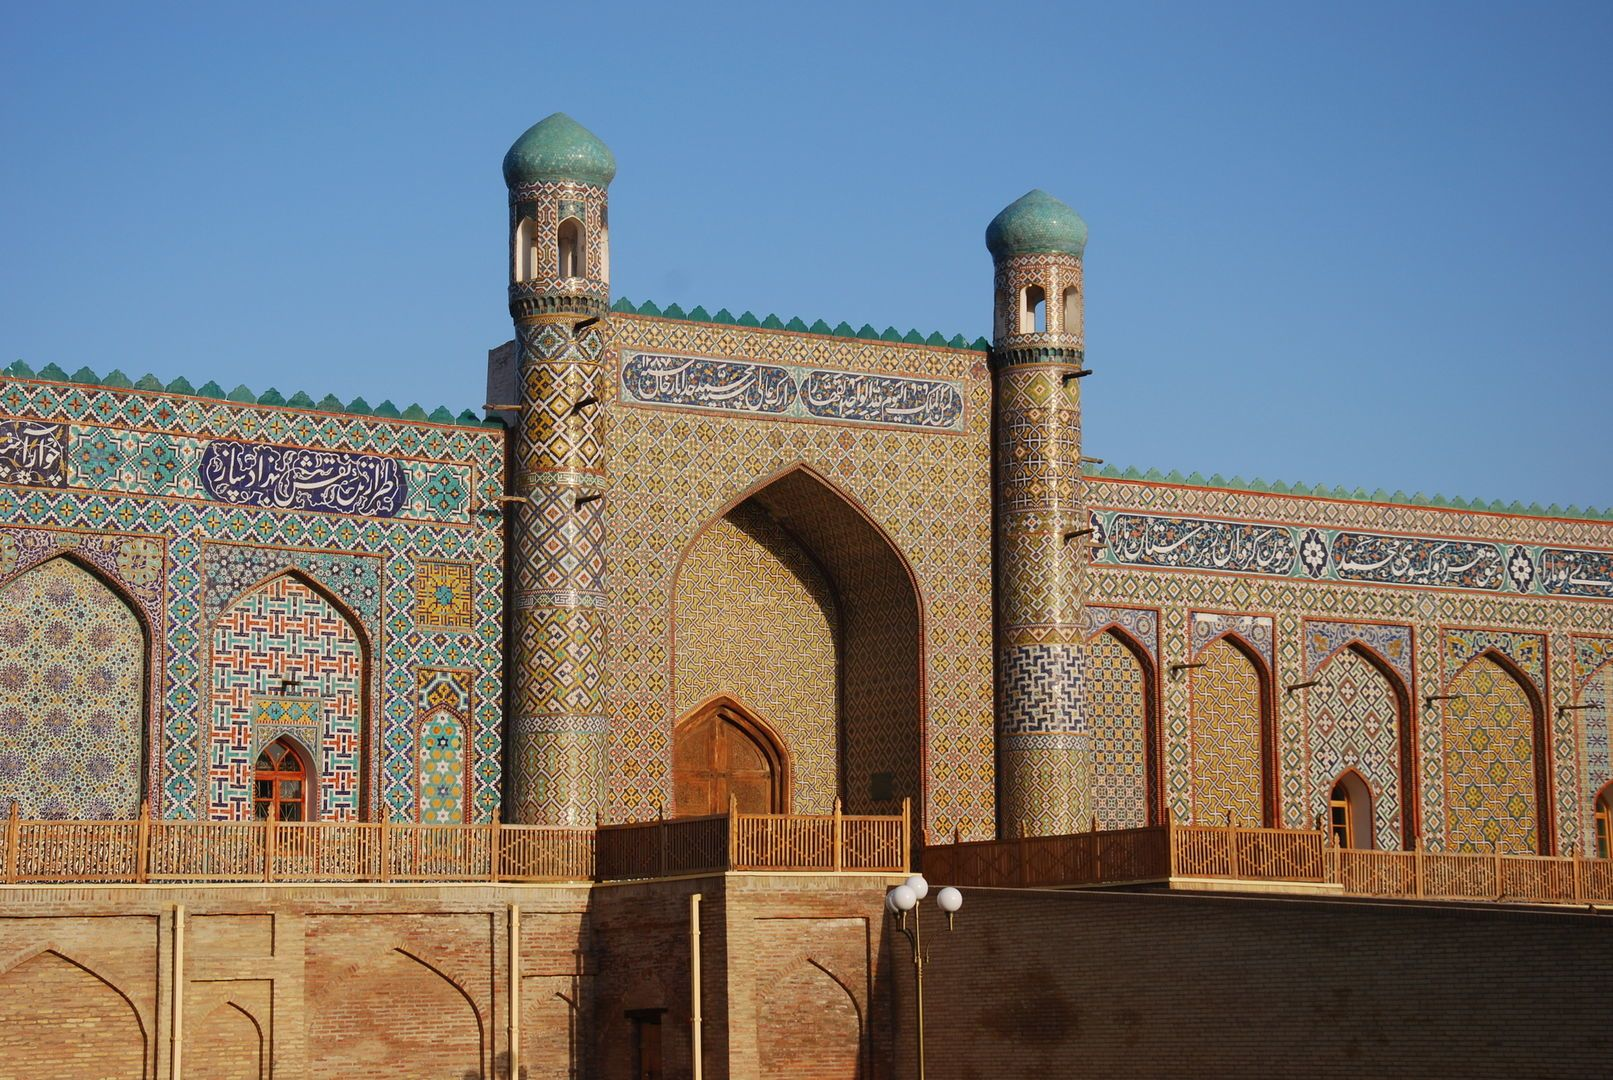 palace of the last khan in Kokand, Uzbekistan tour in Fergana Valley